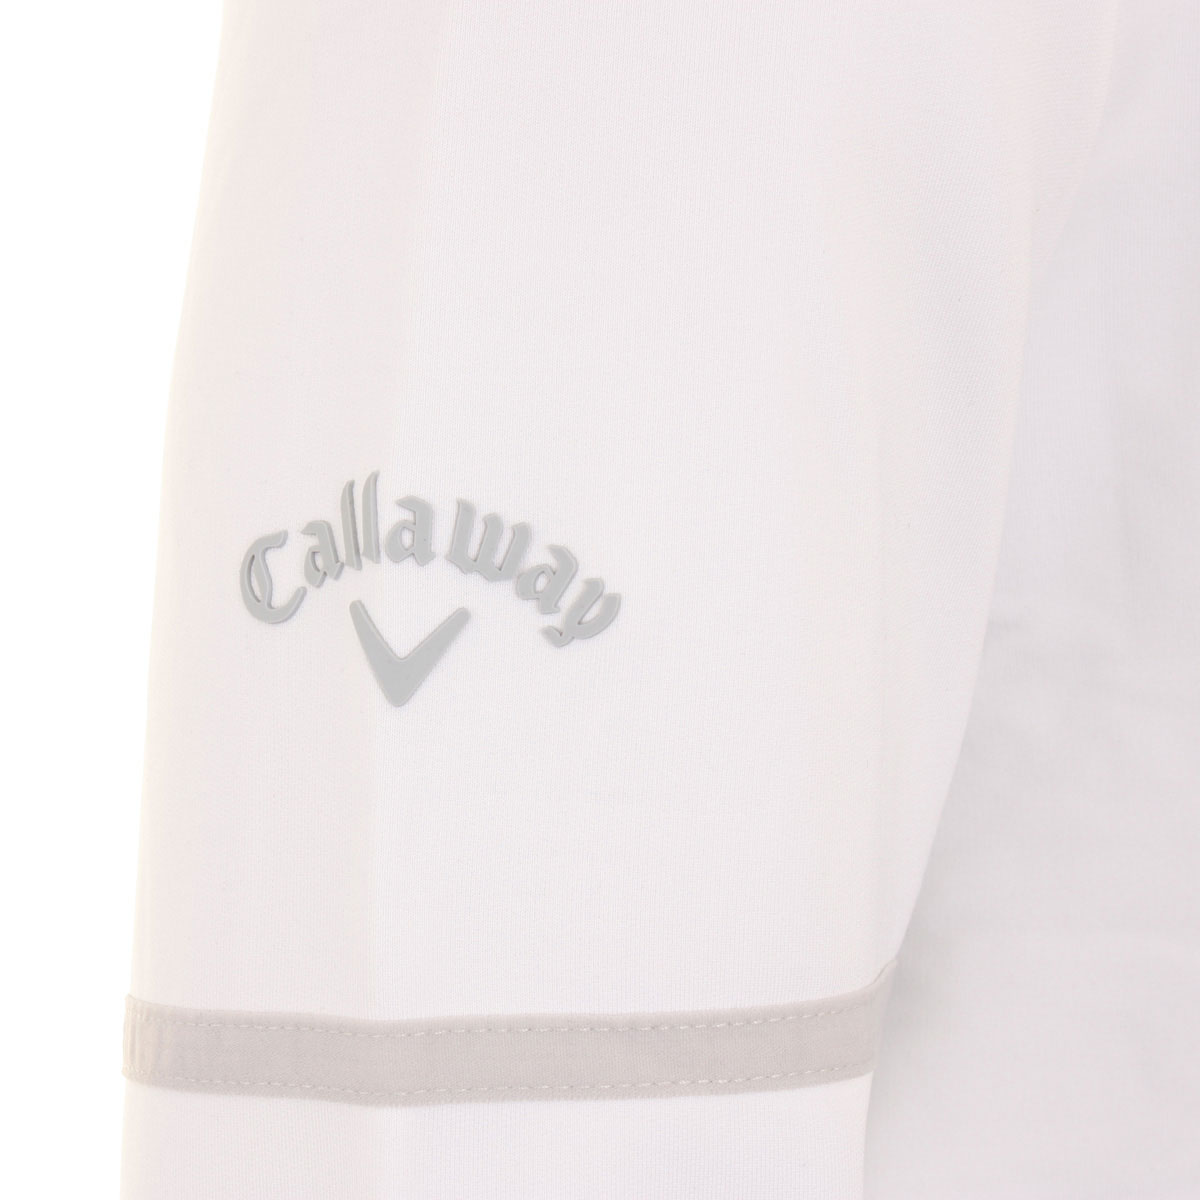 Callaway-Golf-Mens-1-4-Zip-Mid-Layer-Sweater-034-Tour-Logo-034-Pullover-Jumper thumbnail 5